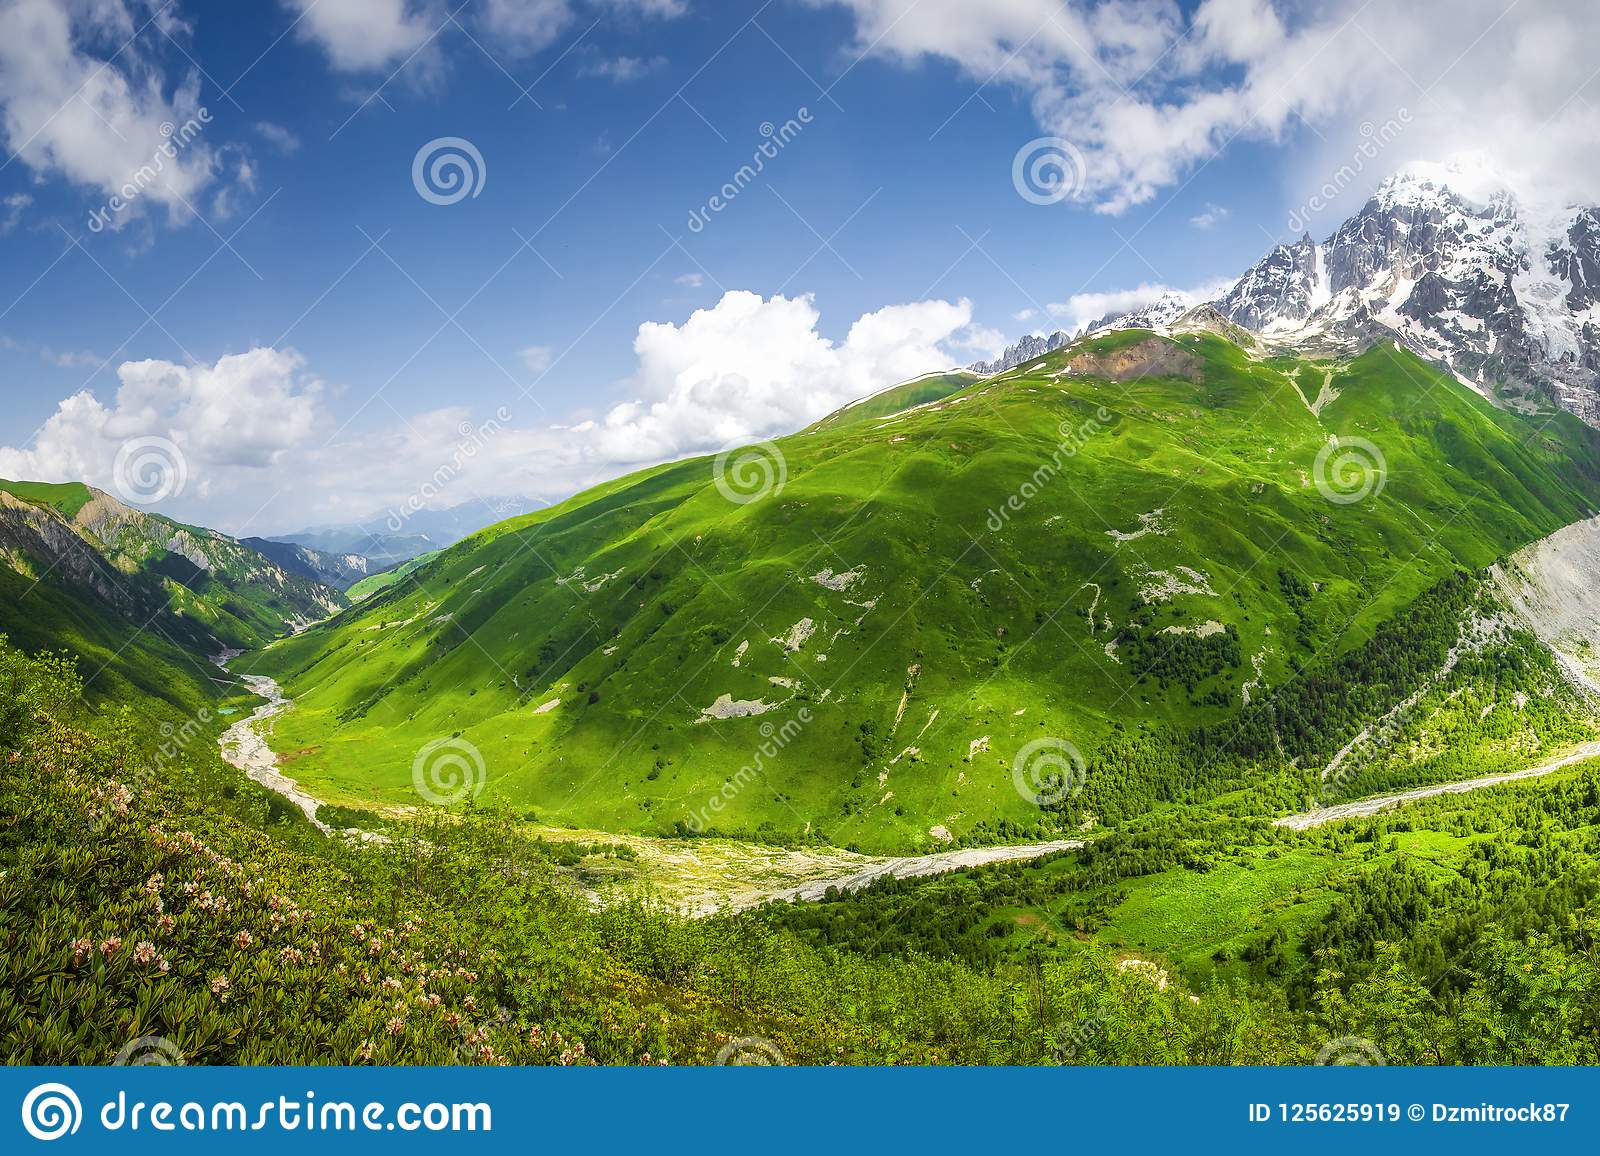 Scenery view on Svaneti mountains. Beautiful green highlands in Georgia